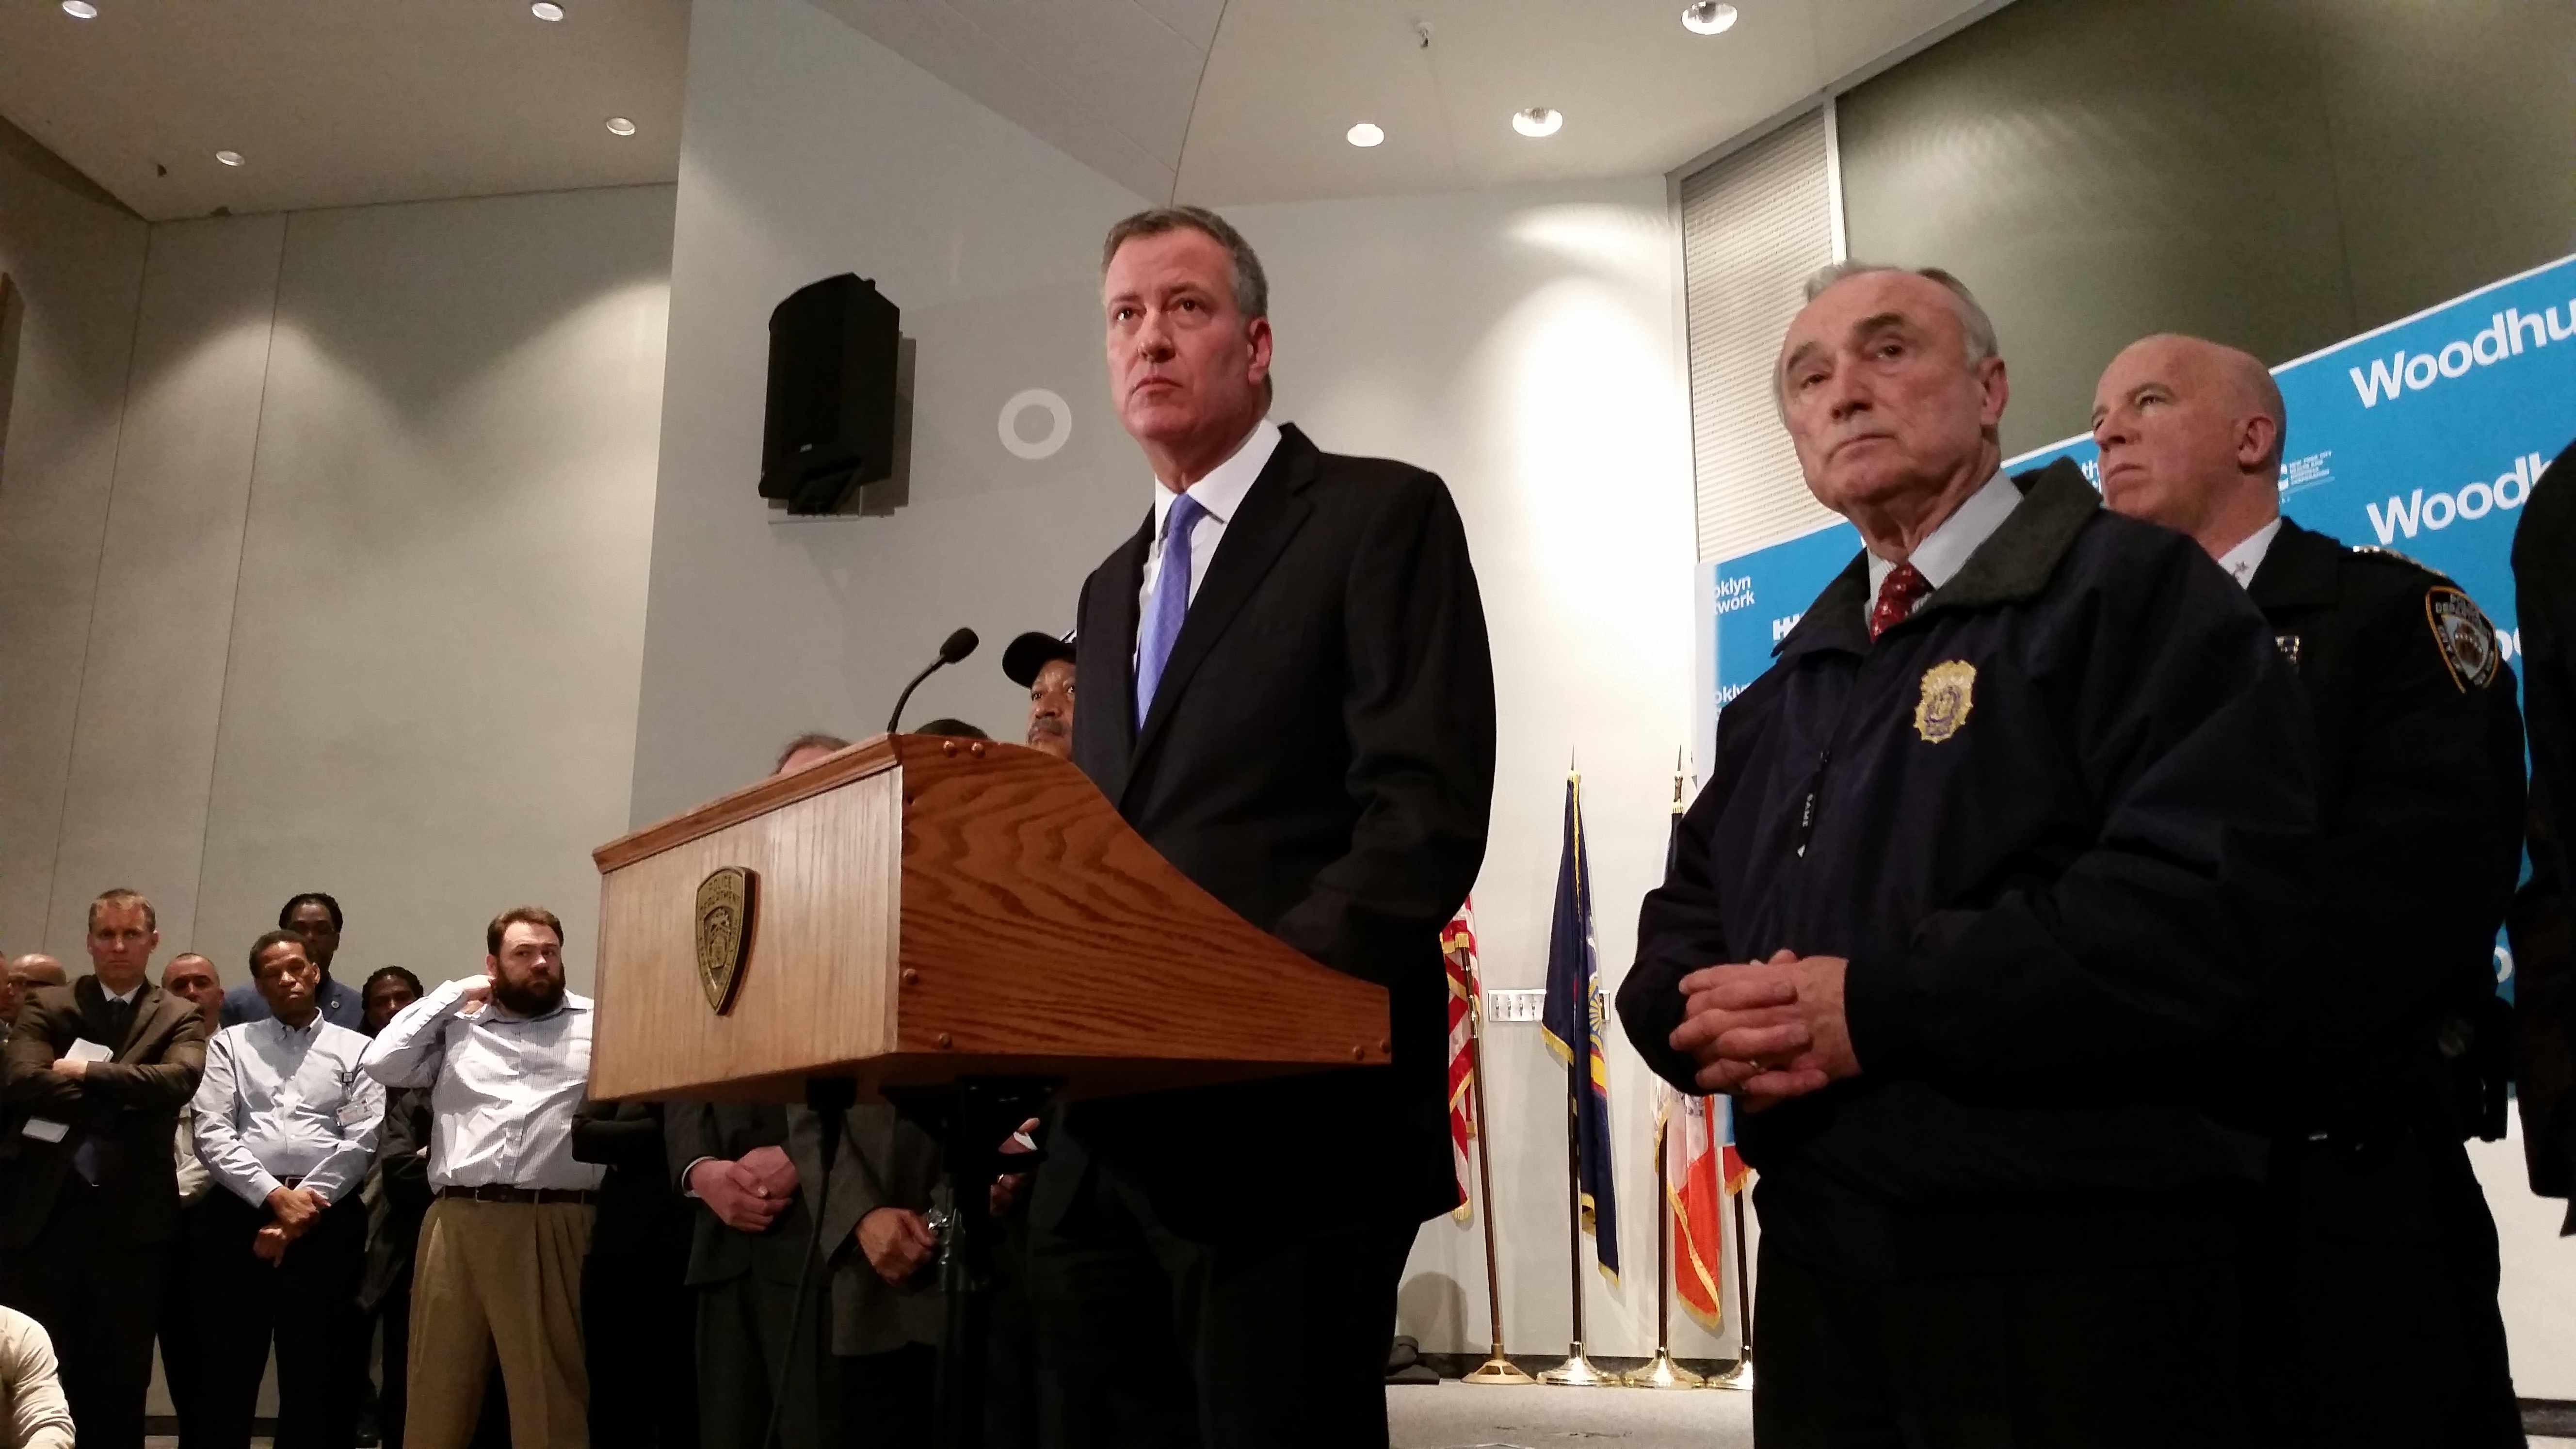 Mayor Bill de Blasio and Police Commissioner Bill Bratton tonight at Woodhull Medical Center in Brooklyn, where two police officers were pronounced dead. (Photo: Ross Barkan)